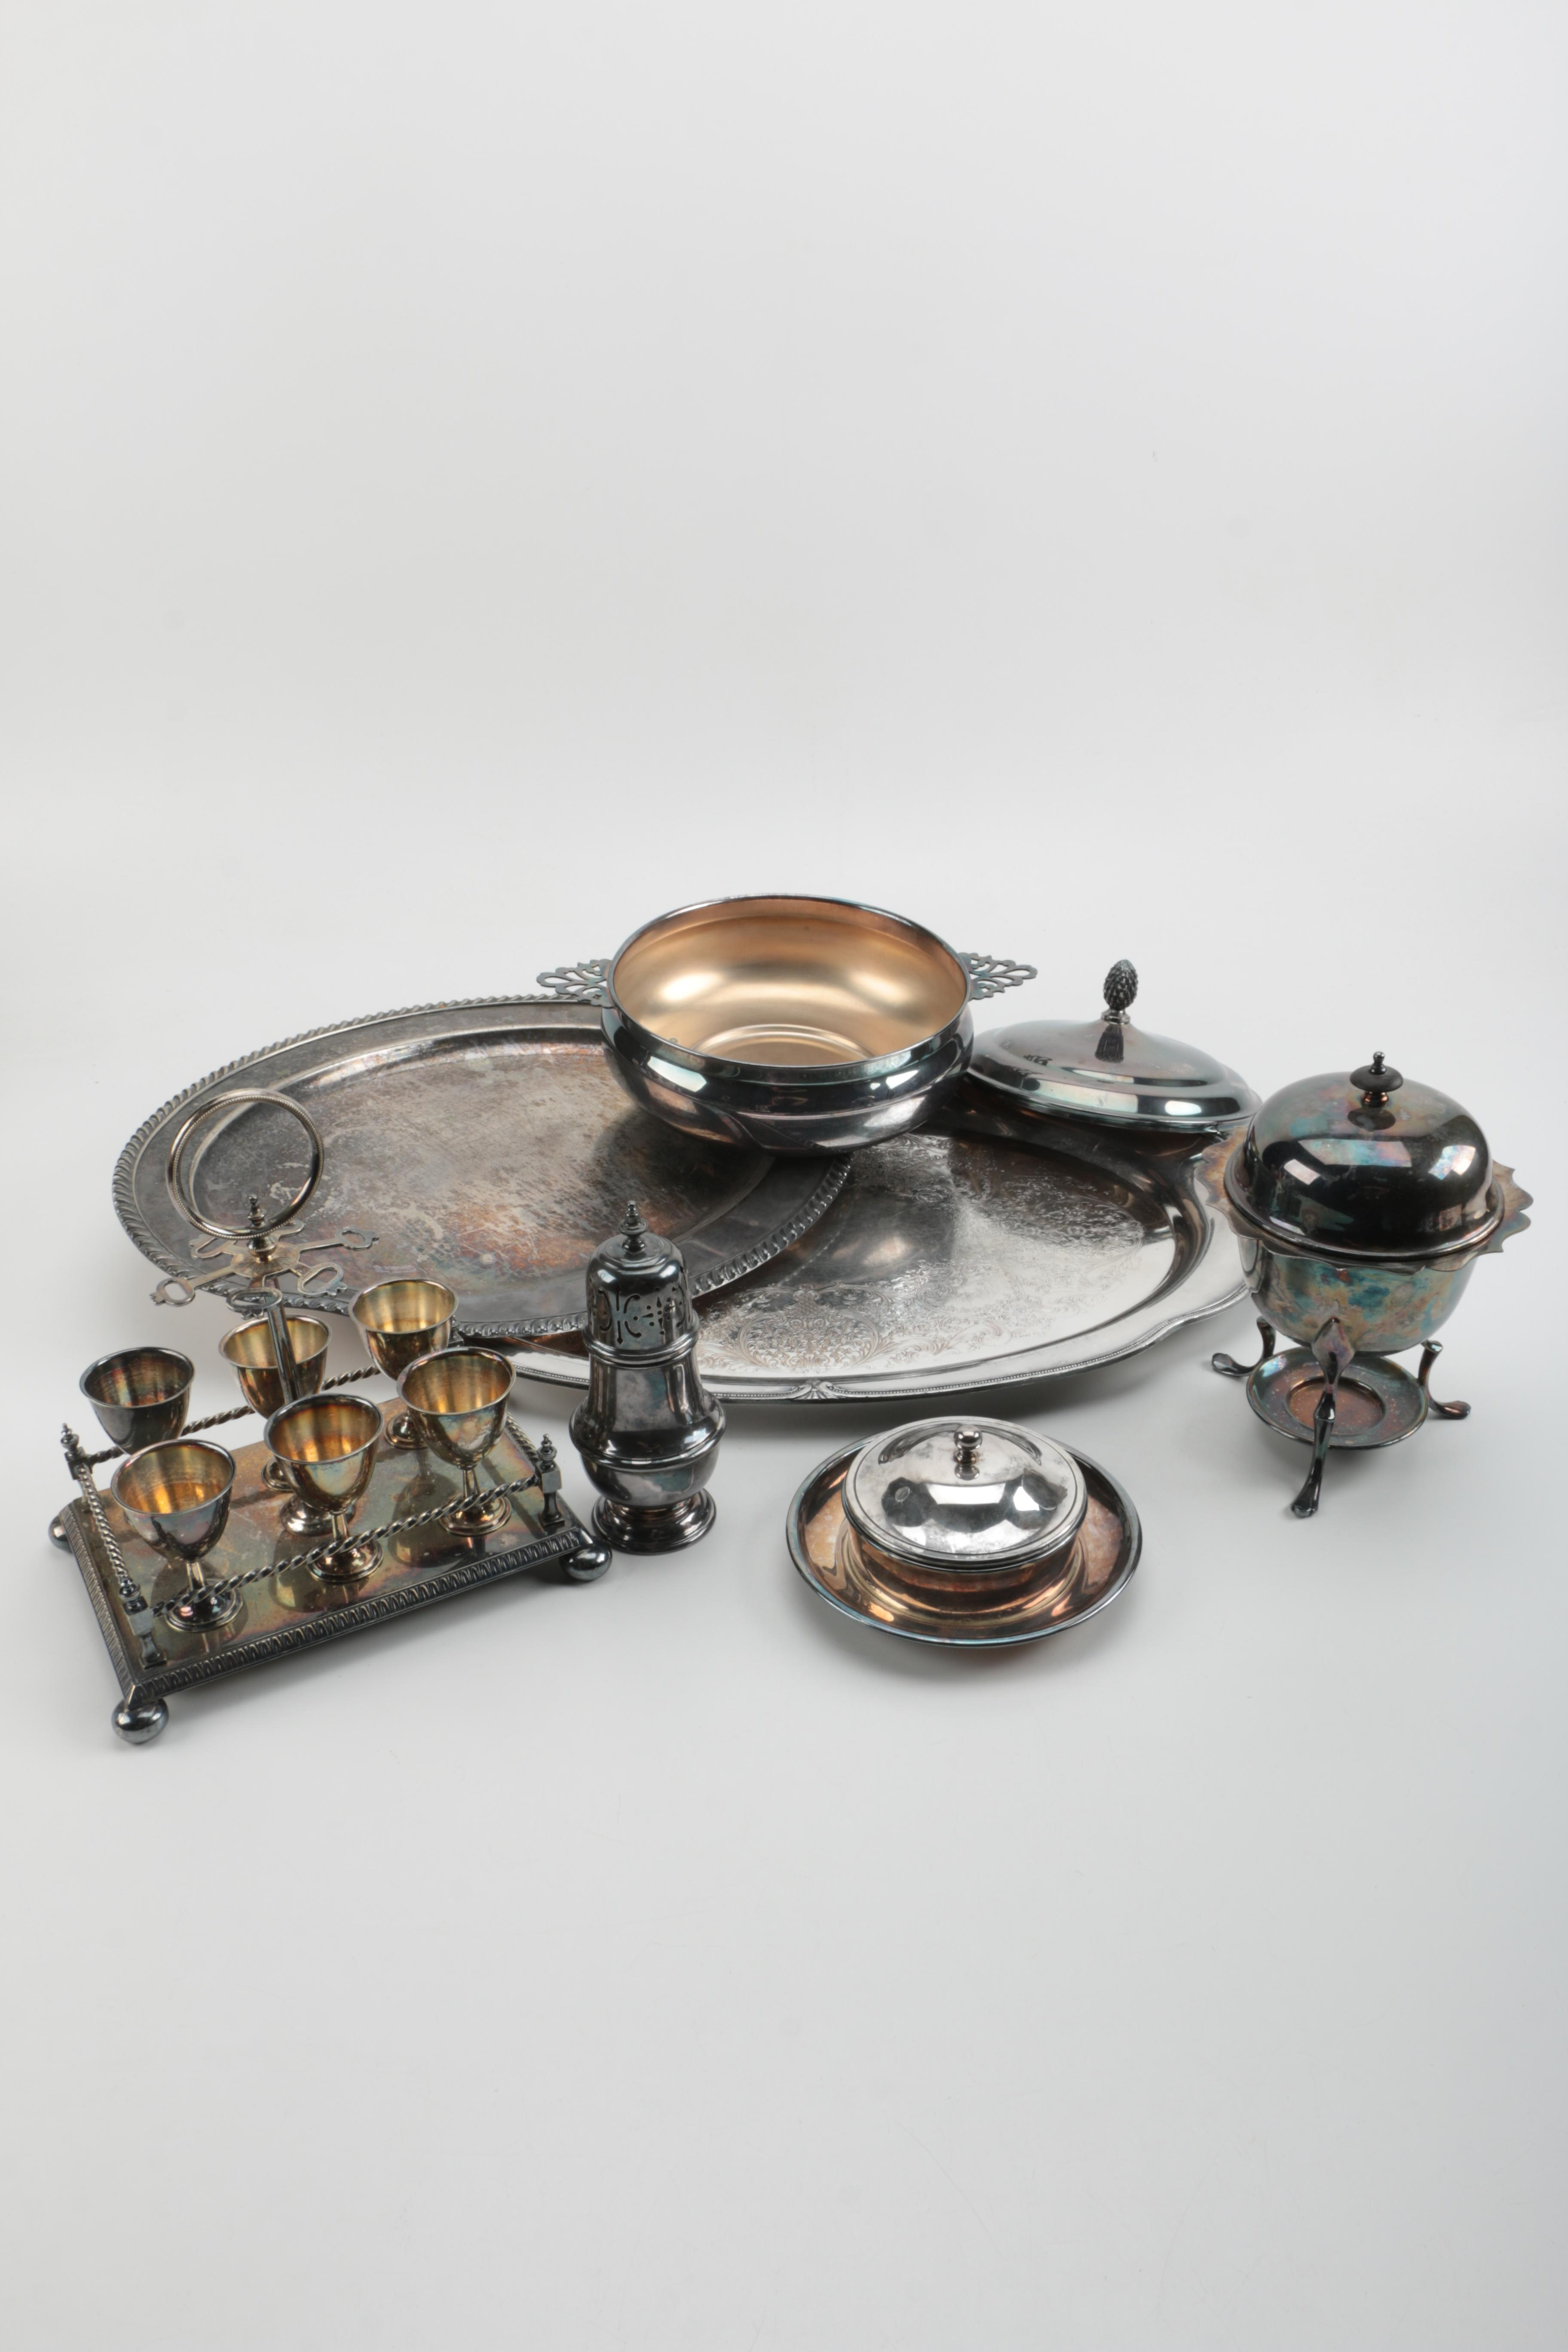 Henry Hobson & Son Egg Cup Set With Stand and Other Silver Plate Servingware